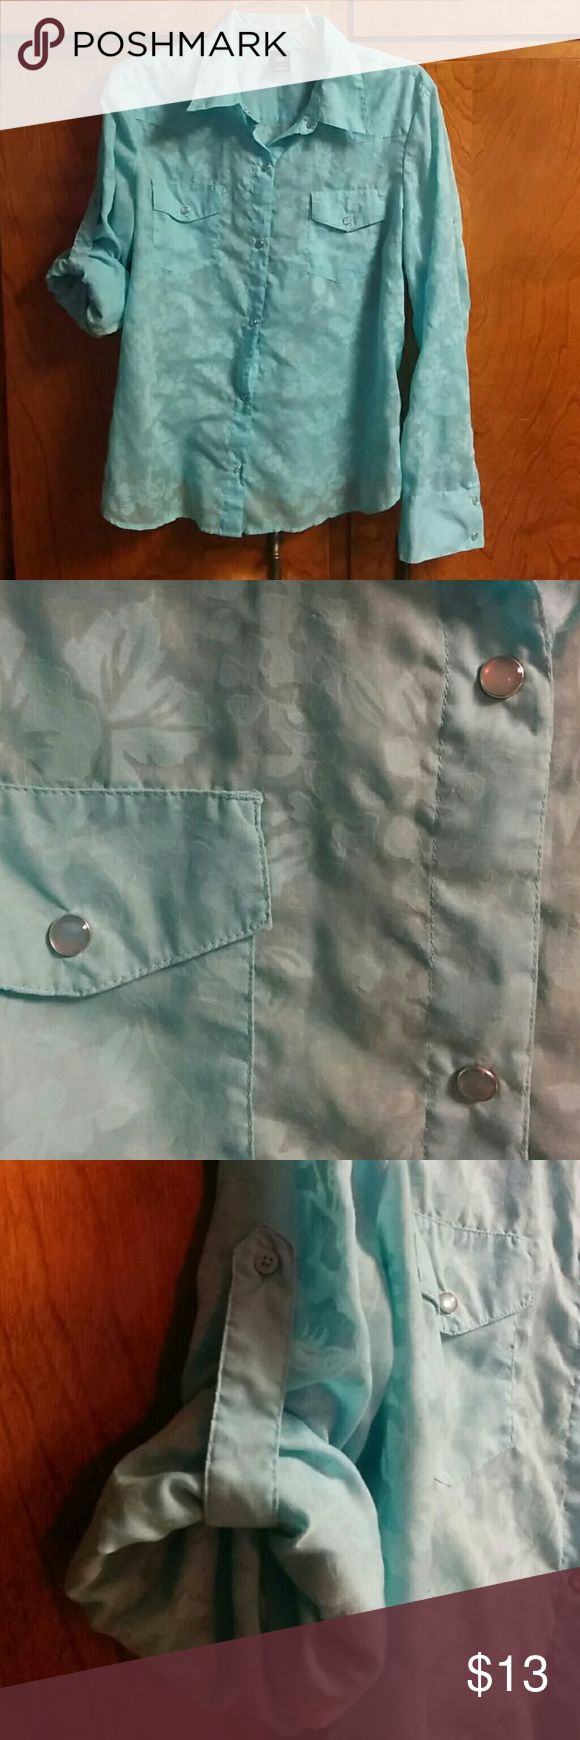 Gap Shear Snap Button Down Super cute sheer turquoise burnout pattern. Buttons are snap with a silvery pearl like overlay. Can wear sleeves up or down. Awesome with a silver Cami. GAP Tops Blouses